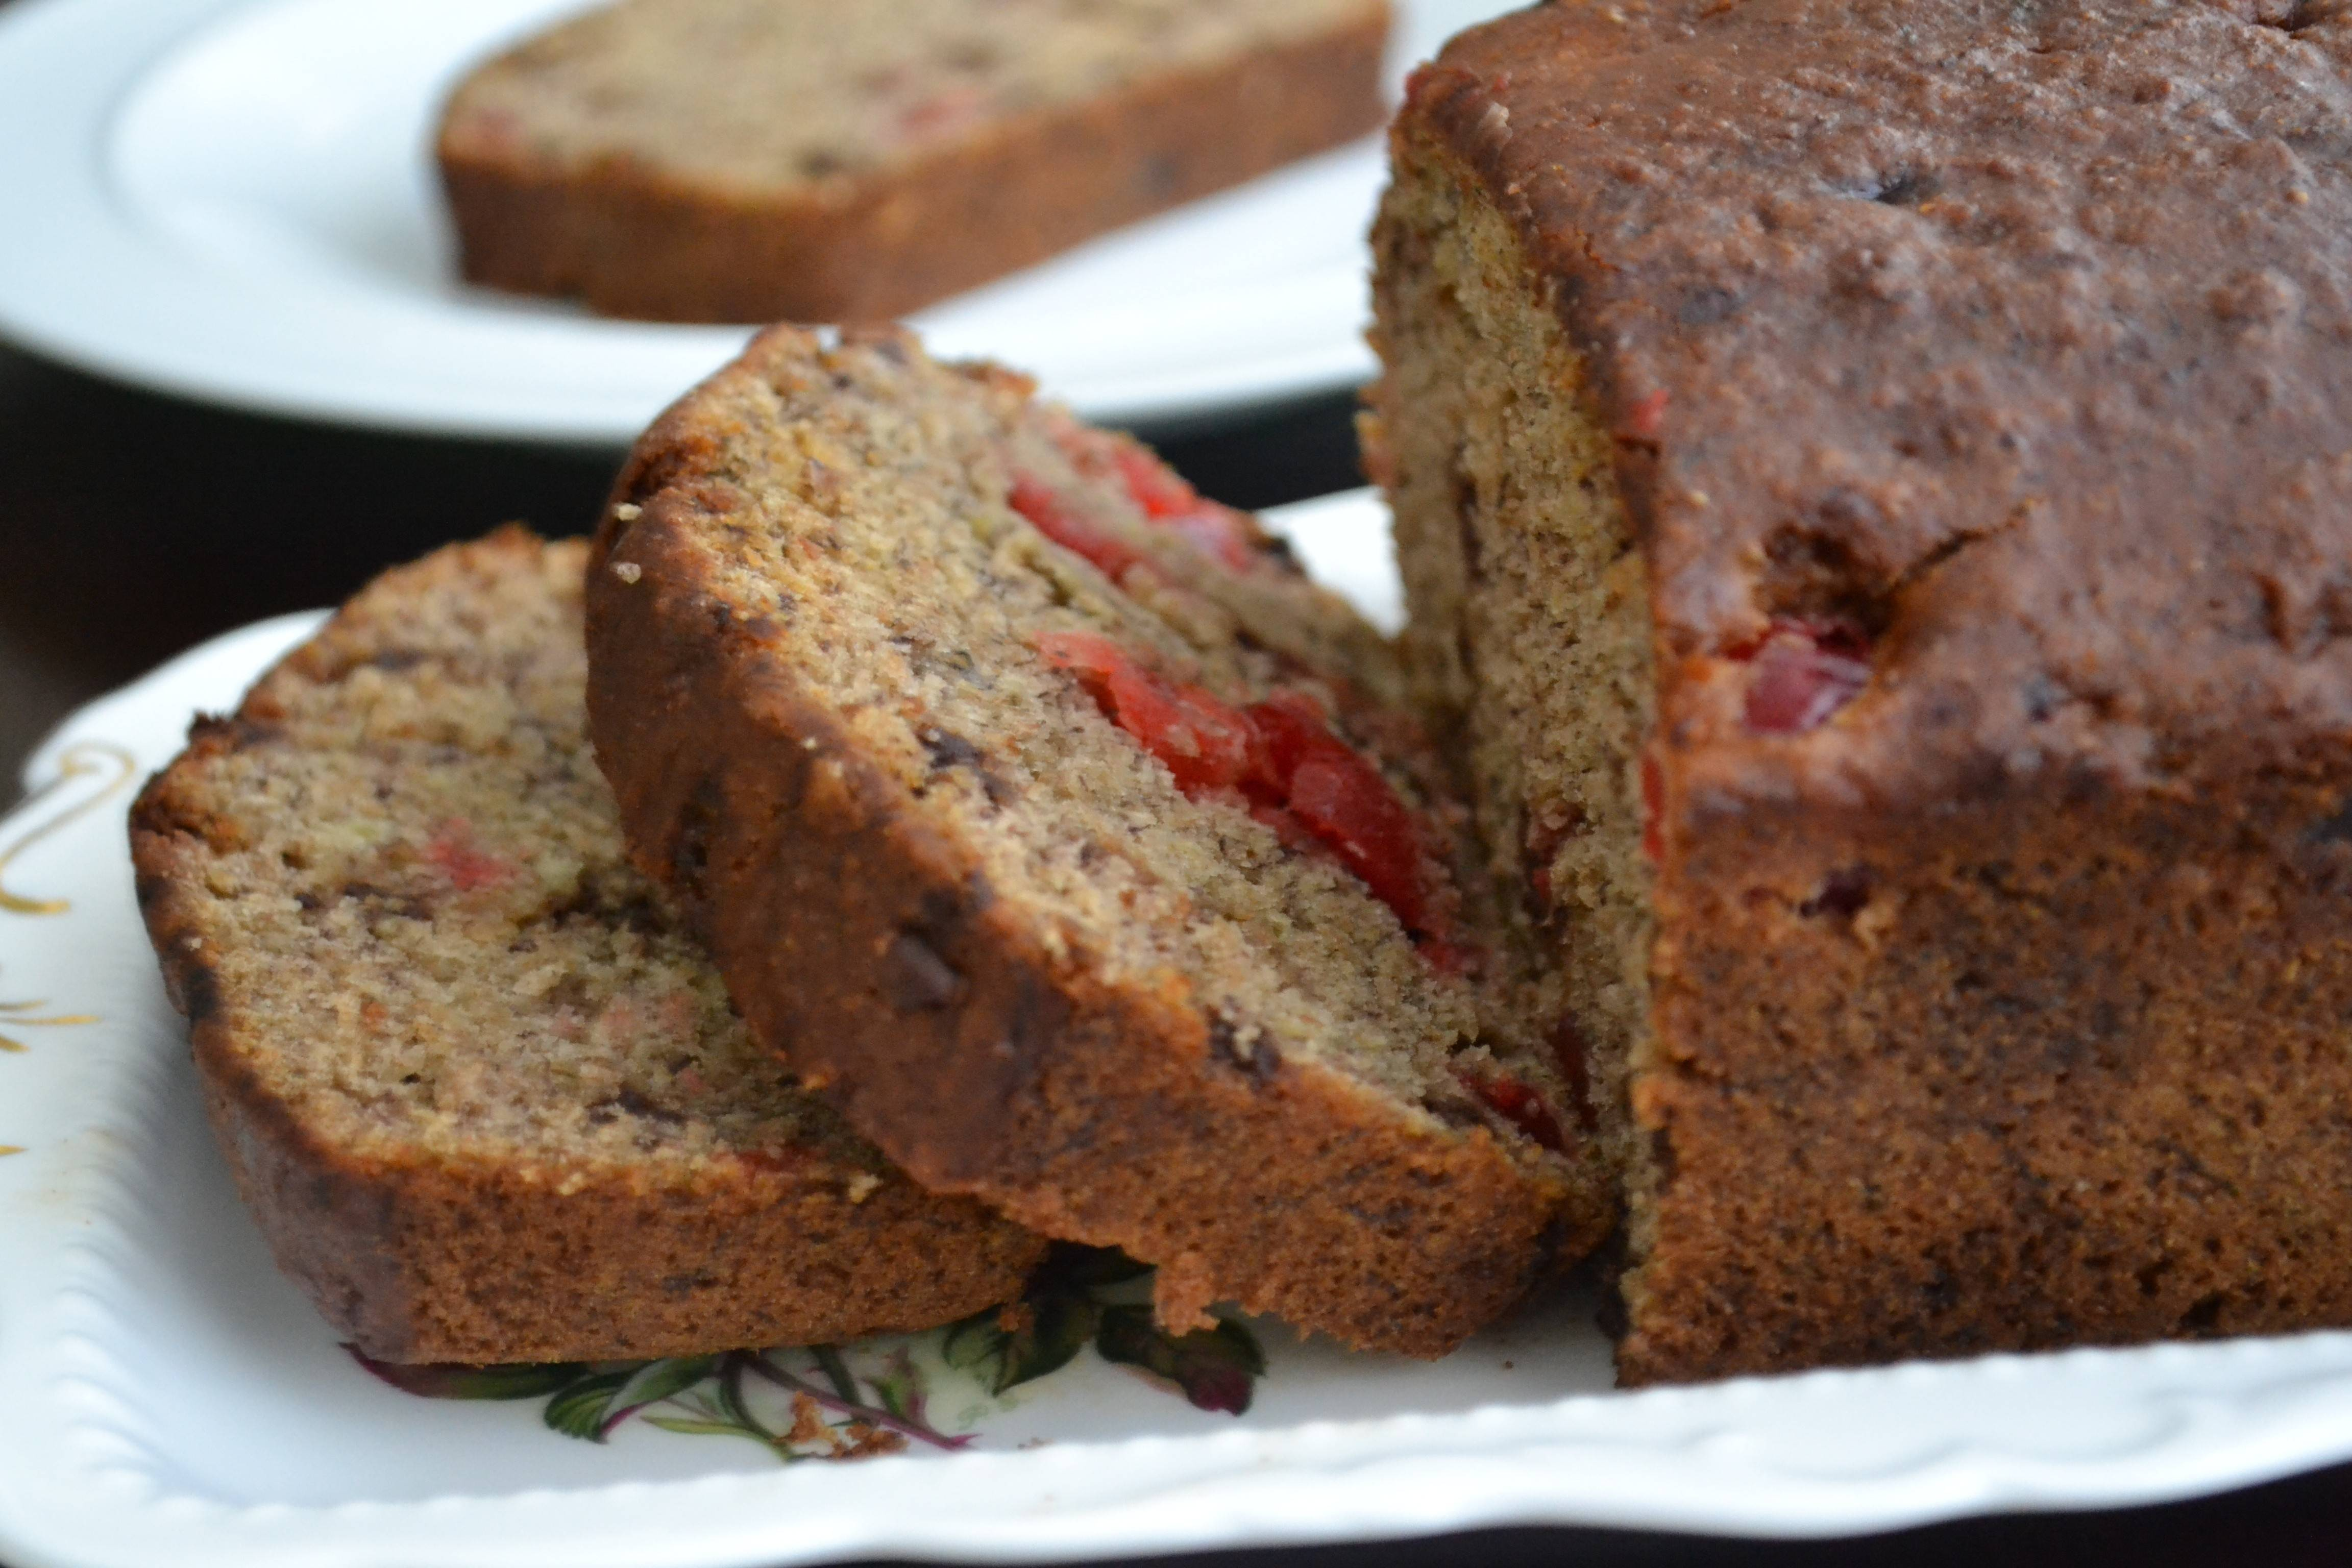 Cherries and chocolate chips perk up banana bread.